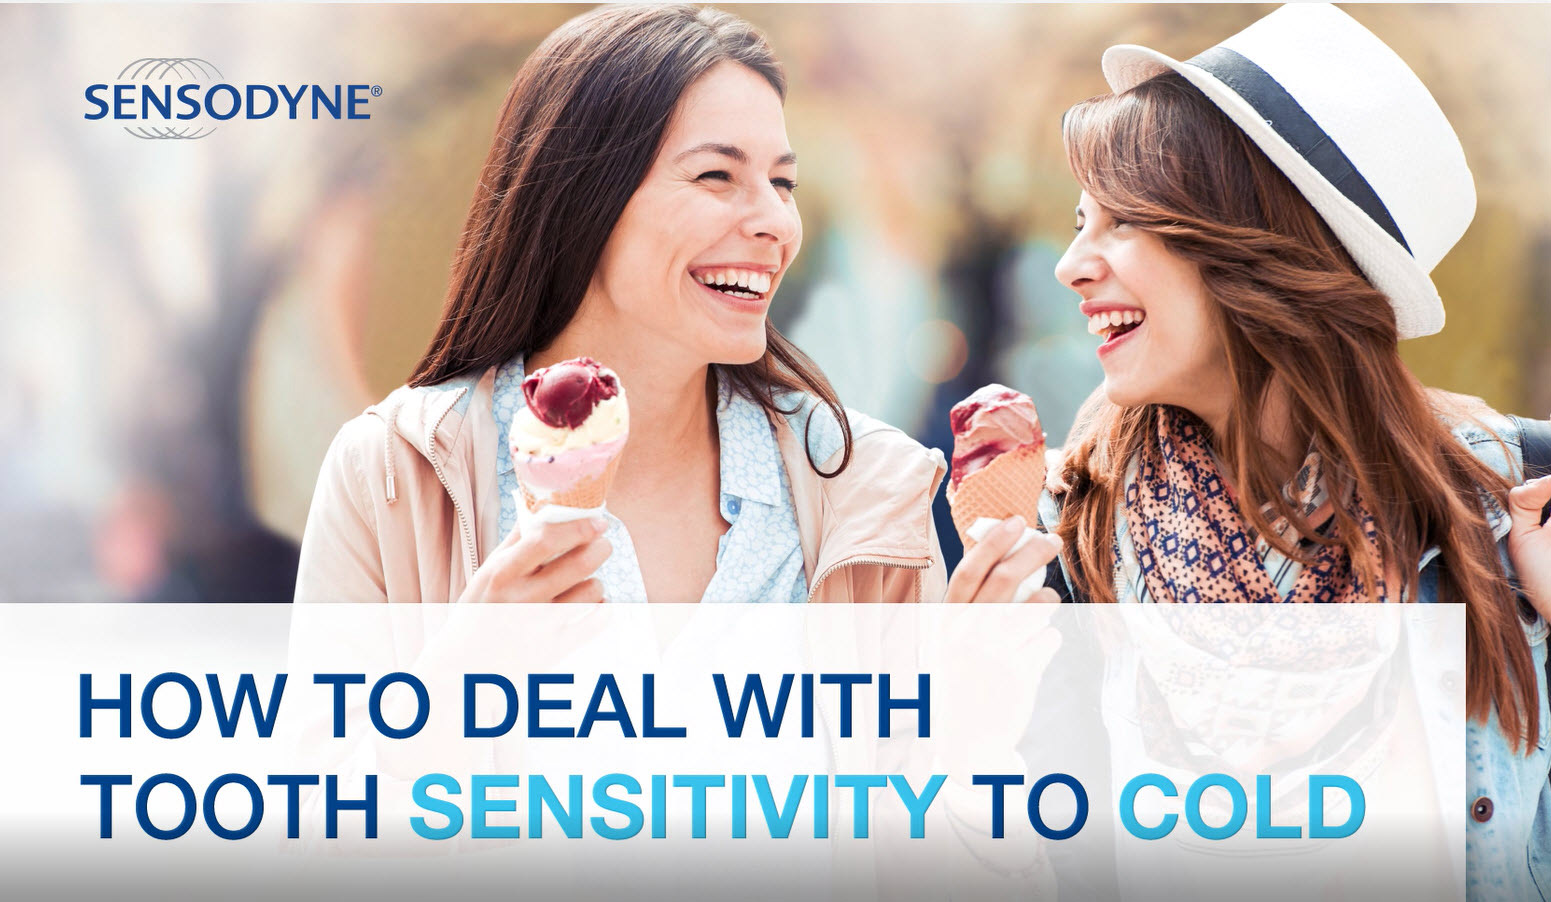 How to deal with tooth sensitivity to cold